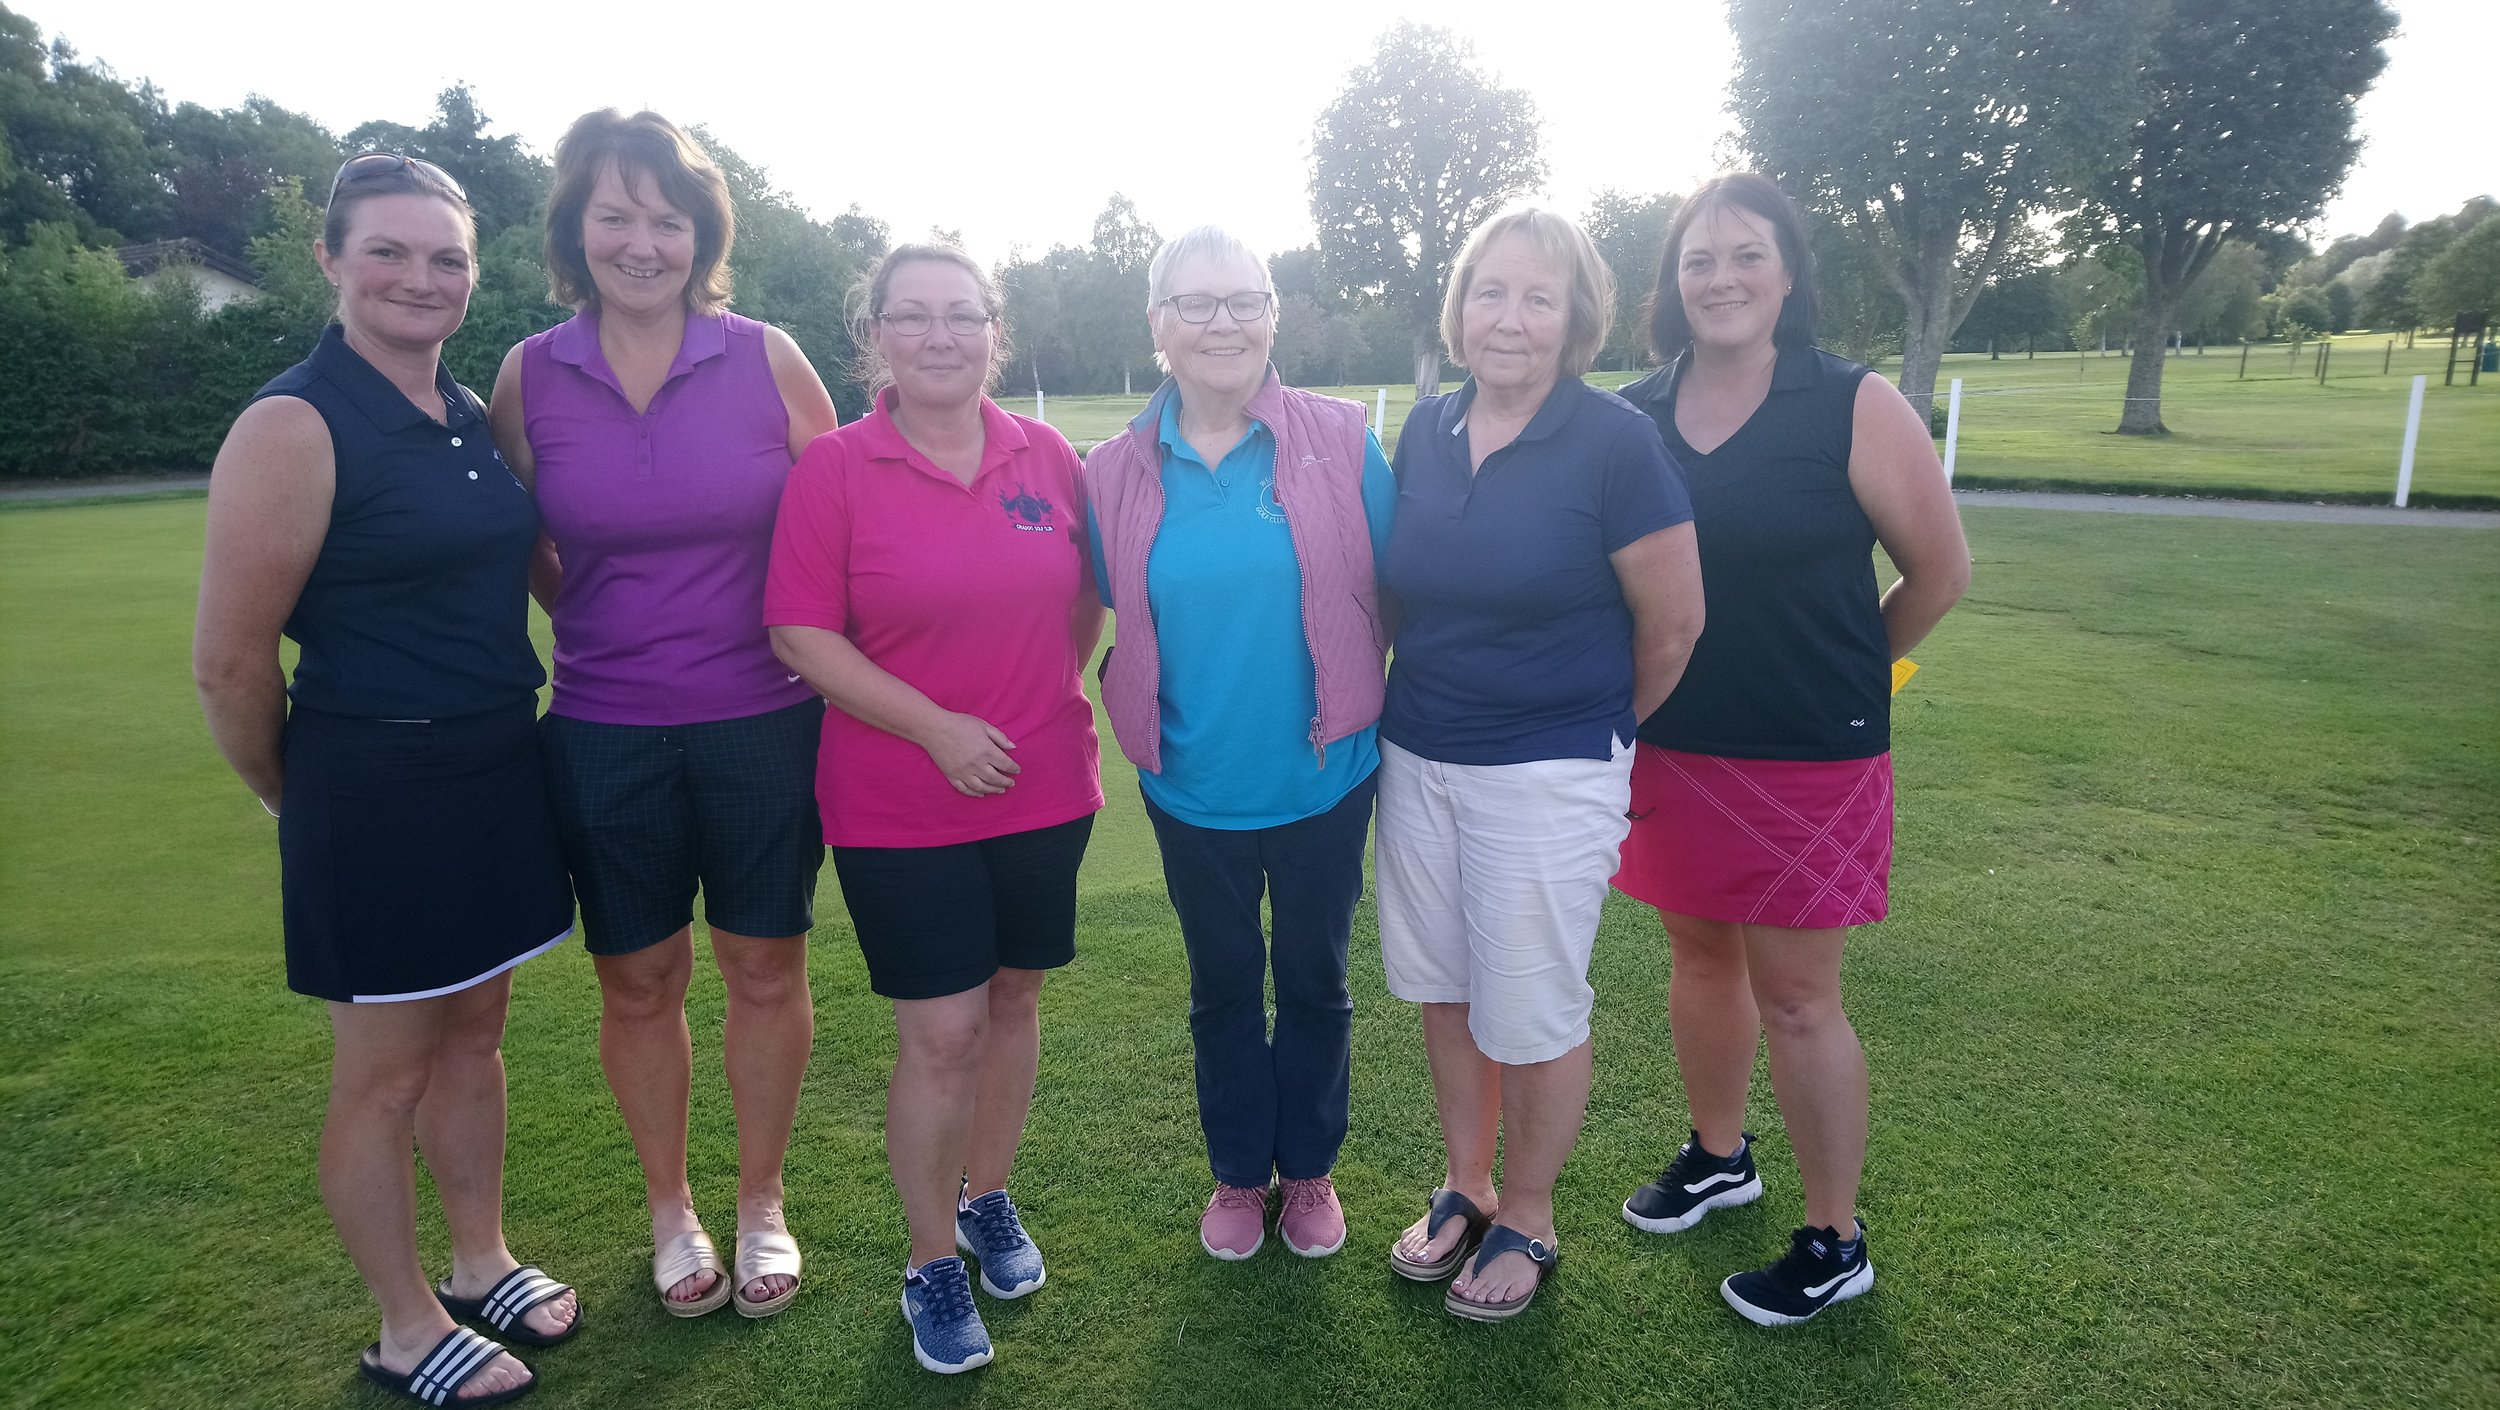 The winners that were there come photo taking! Sherrie Edwards, Hayley Price (1st 0-20), Steph Jenkins, Anne Downes Evans (1st 21-36), Pam Lewis (2nd 21-36), Lisa Hughes (2nd 0-20).